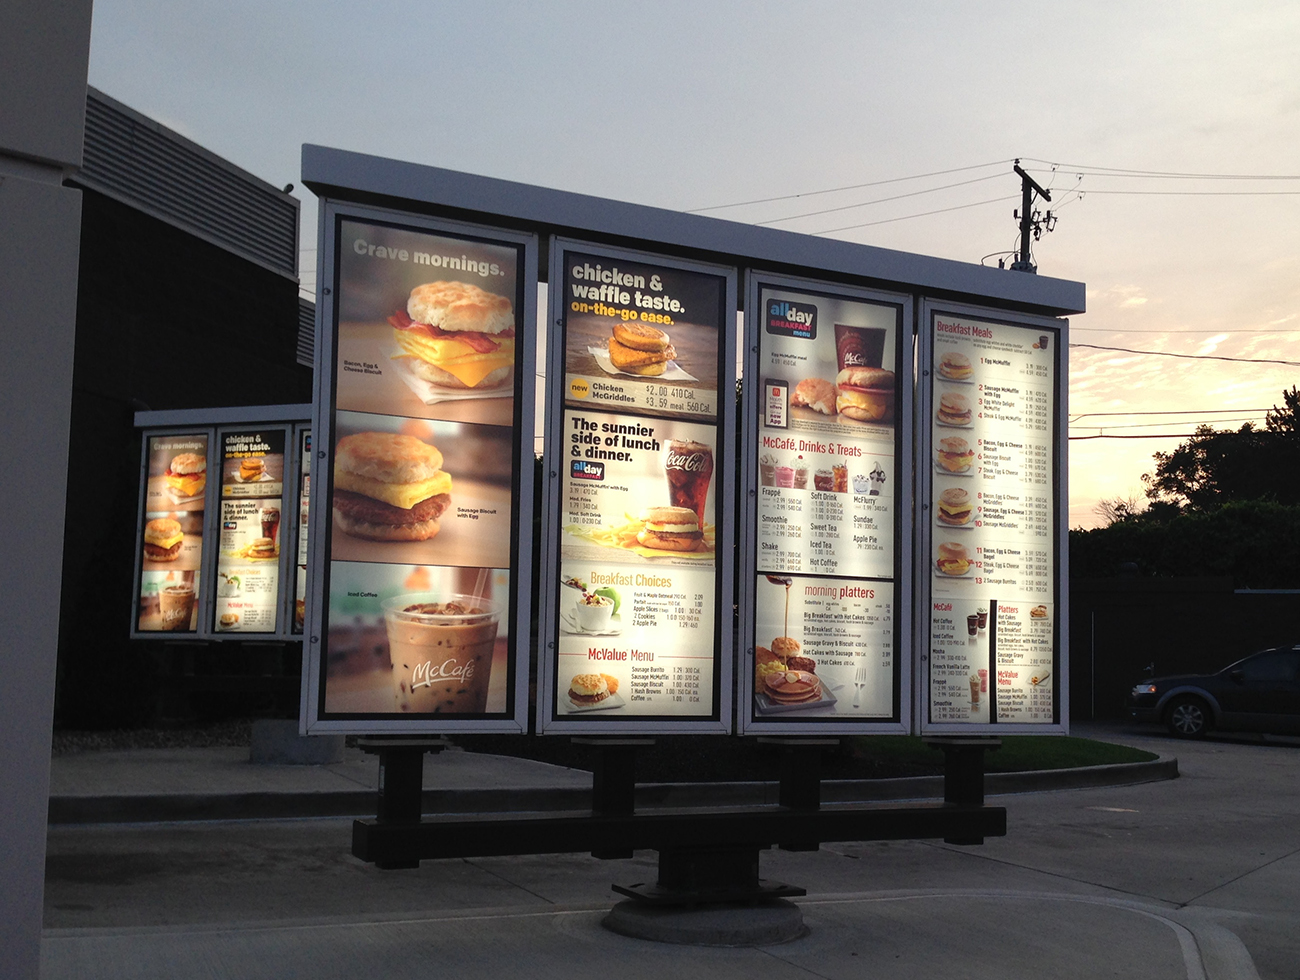 A photo shows a McDonald's drive-through menu put outside the restaurant. The pages of the menu are shown placed in a large lit-up glass display case.